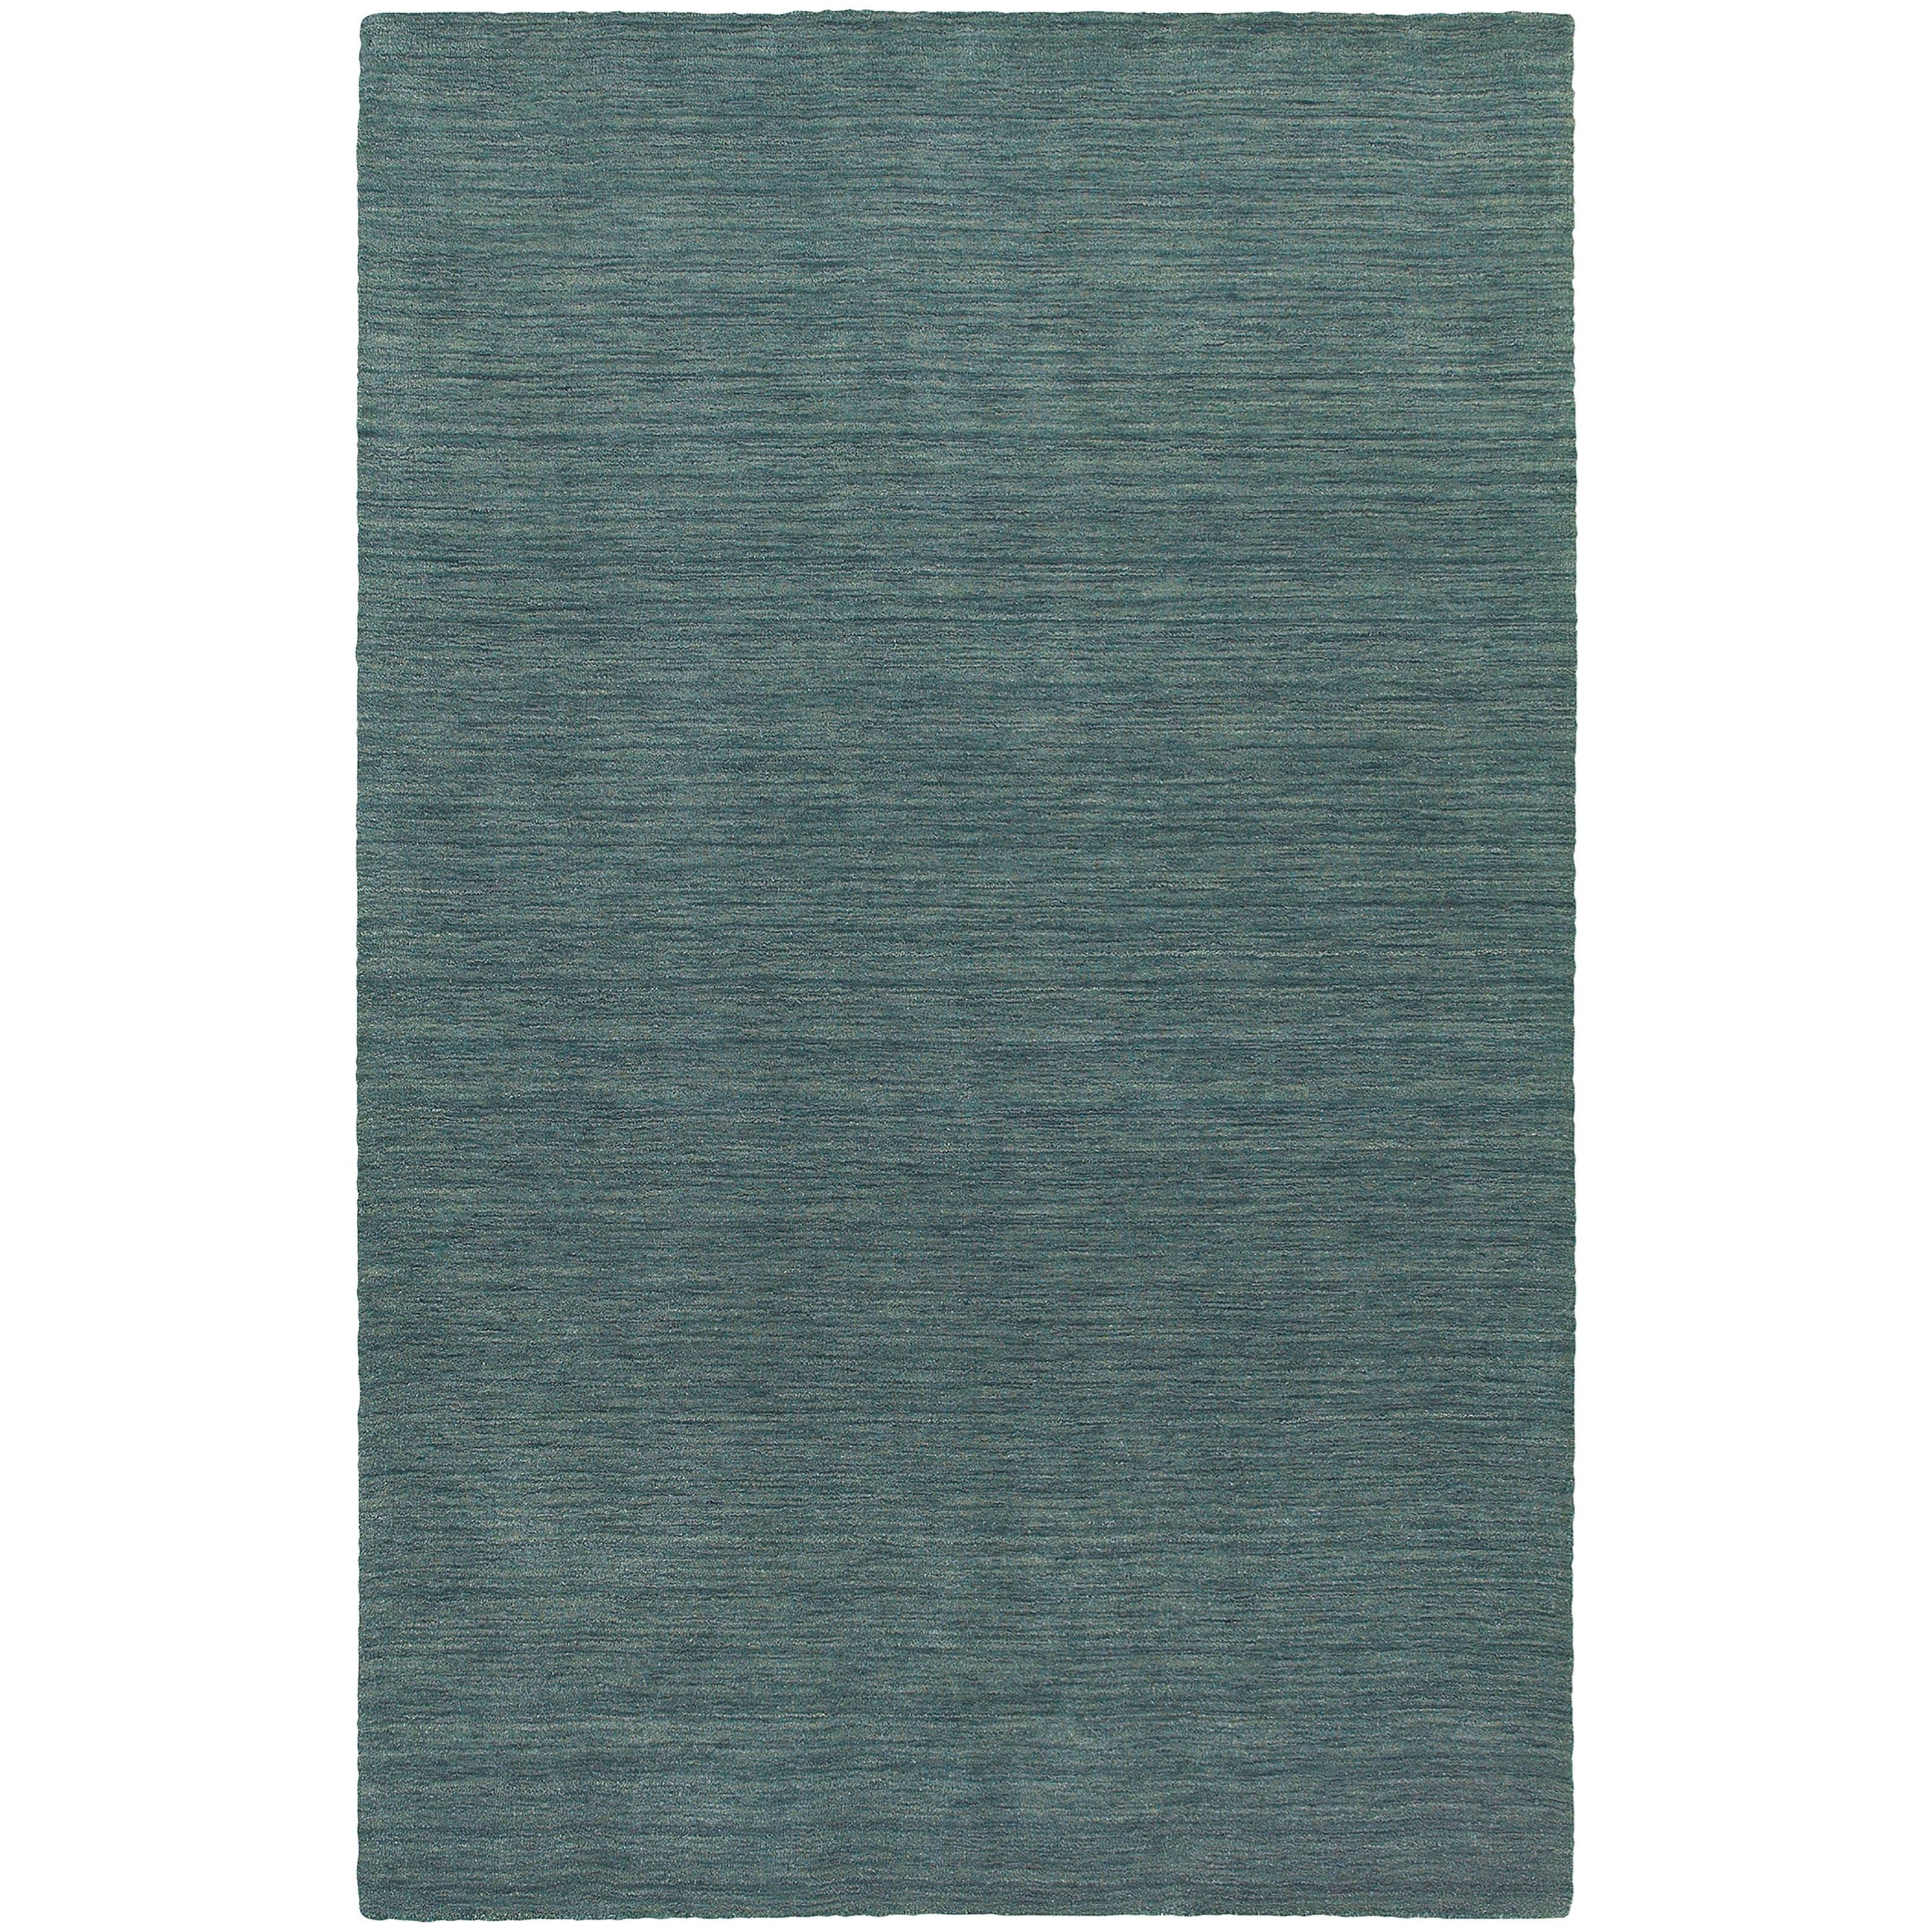 "Aniston 8' 0"" X 10' 0"" Rectangle Area Rug by Oriental Weavers at Darvin Furniture"